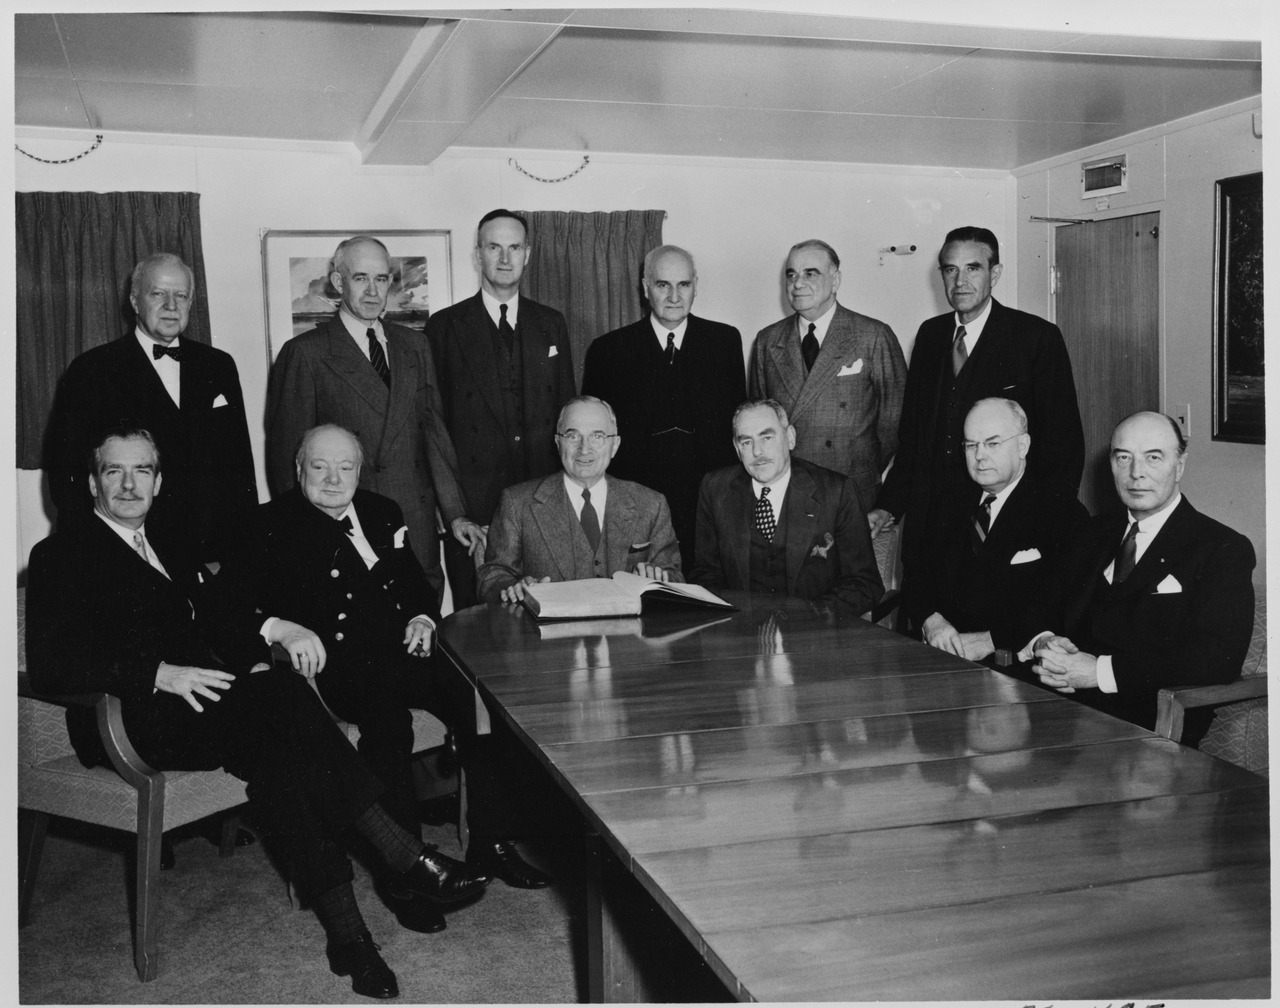 Posing are participants in a conference aboard President Truman's yacht, Oliver S. Franks (third from left, standing), Baron Franks (1905-1992), with Prime Minister Winston Churchill and US President Harry S. Truman. They are huddled around a table.